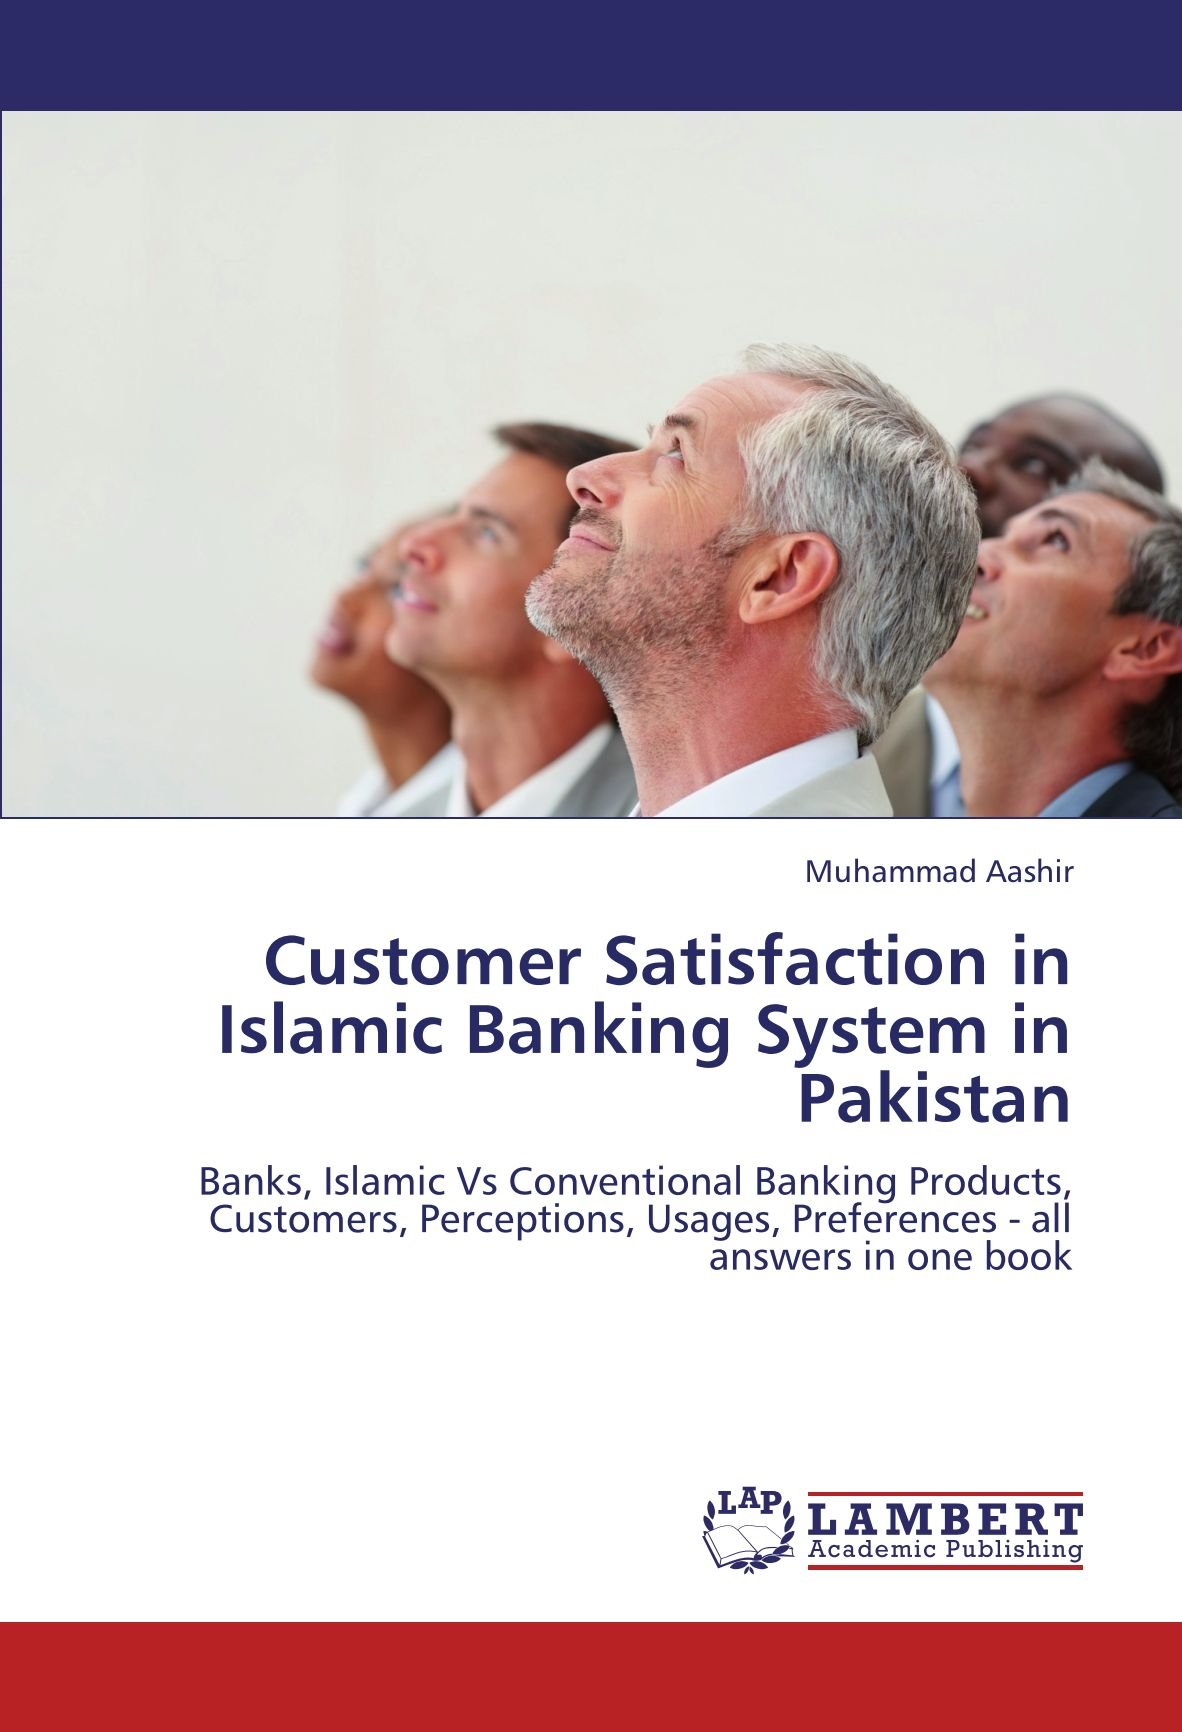 Customer Satisfaction in Islamic Banking System in Pakistan: Banks, Islamic Vs Conventional Banking Products, Customers, Perceptions, Usages, Preferences - all answers in one book pdf